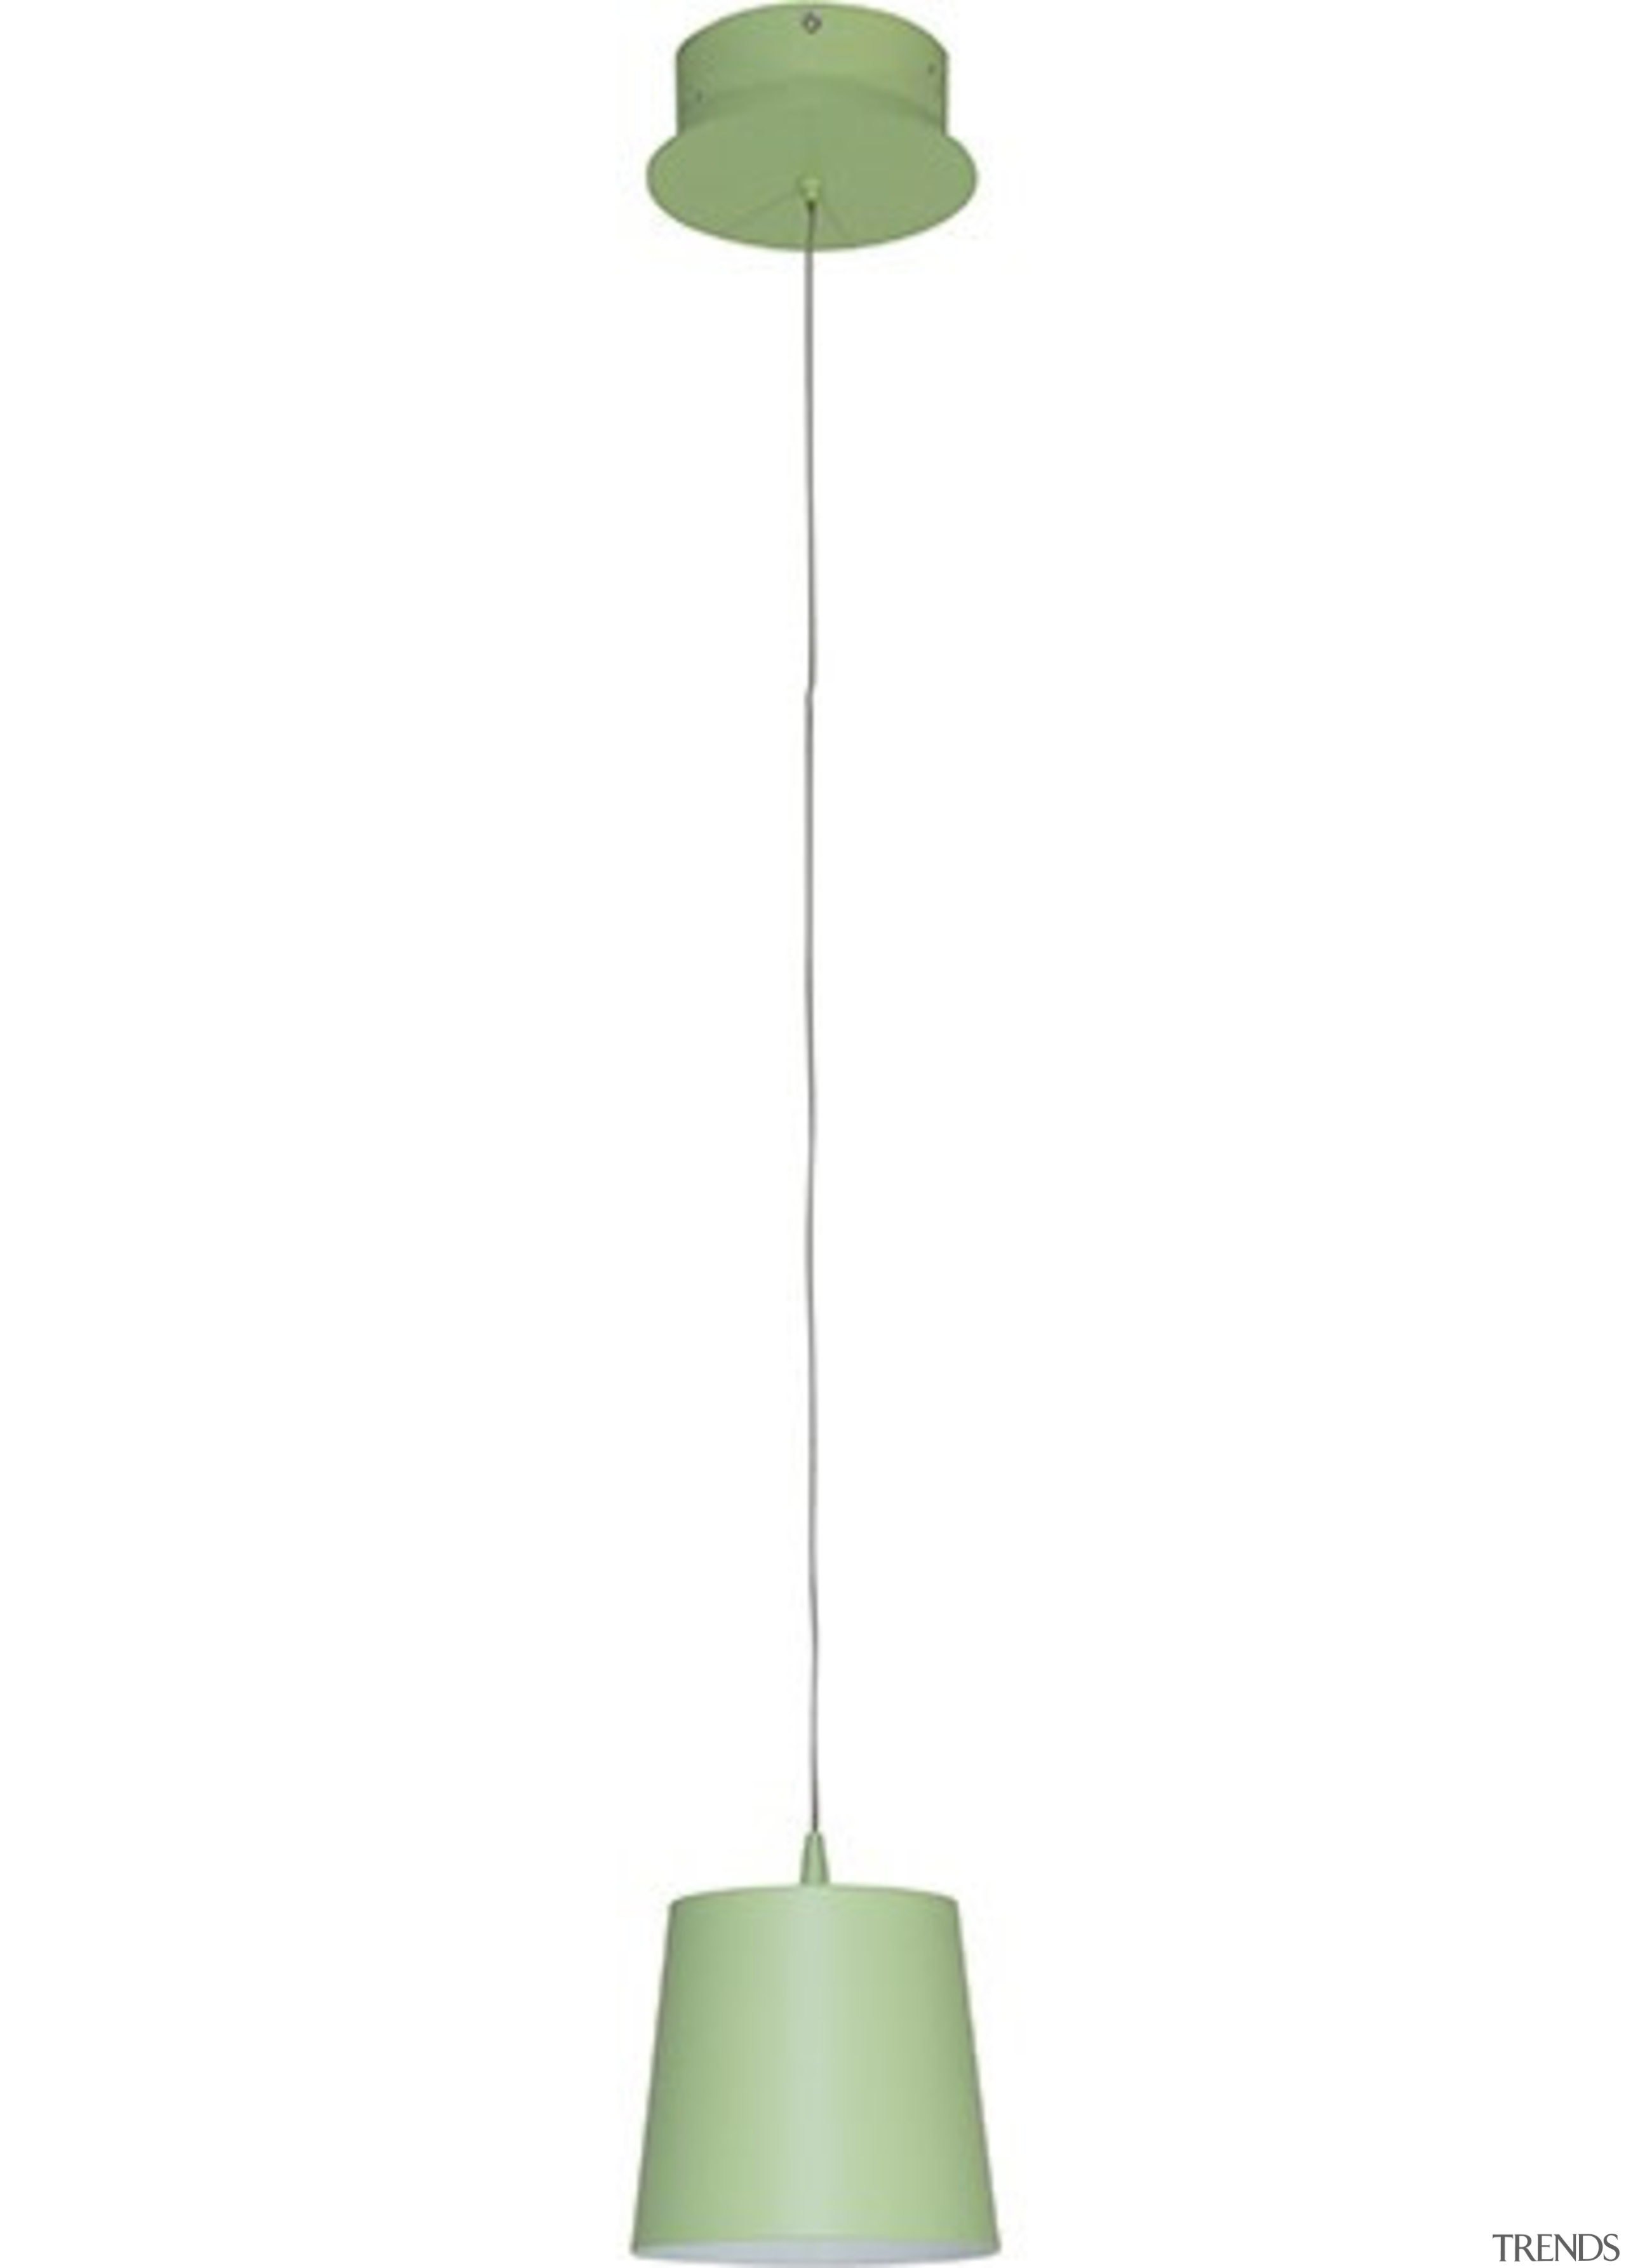 FeaturesThe clean and simple design creates a very ceiling fixture, green, light fixture, lighting, product design, white